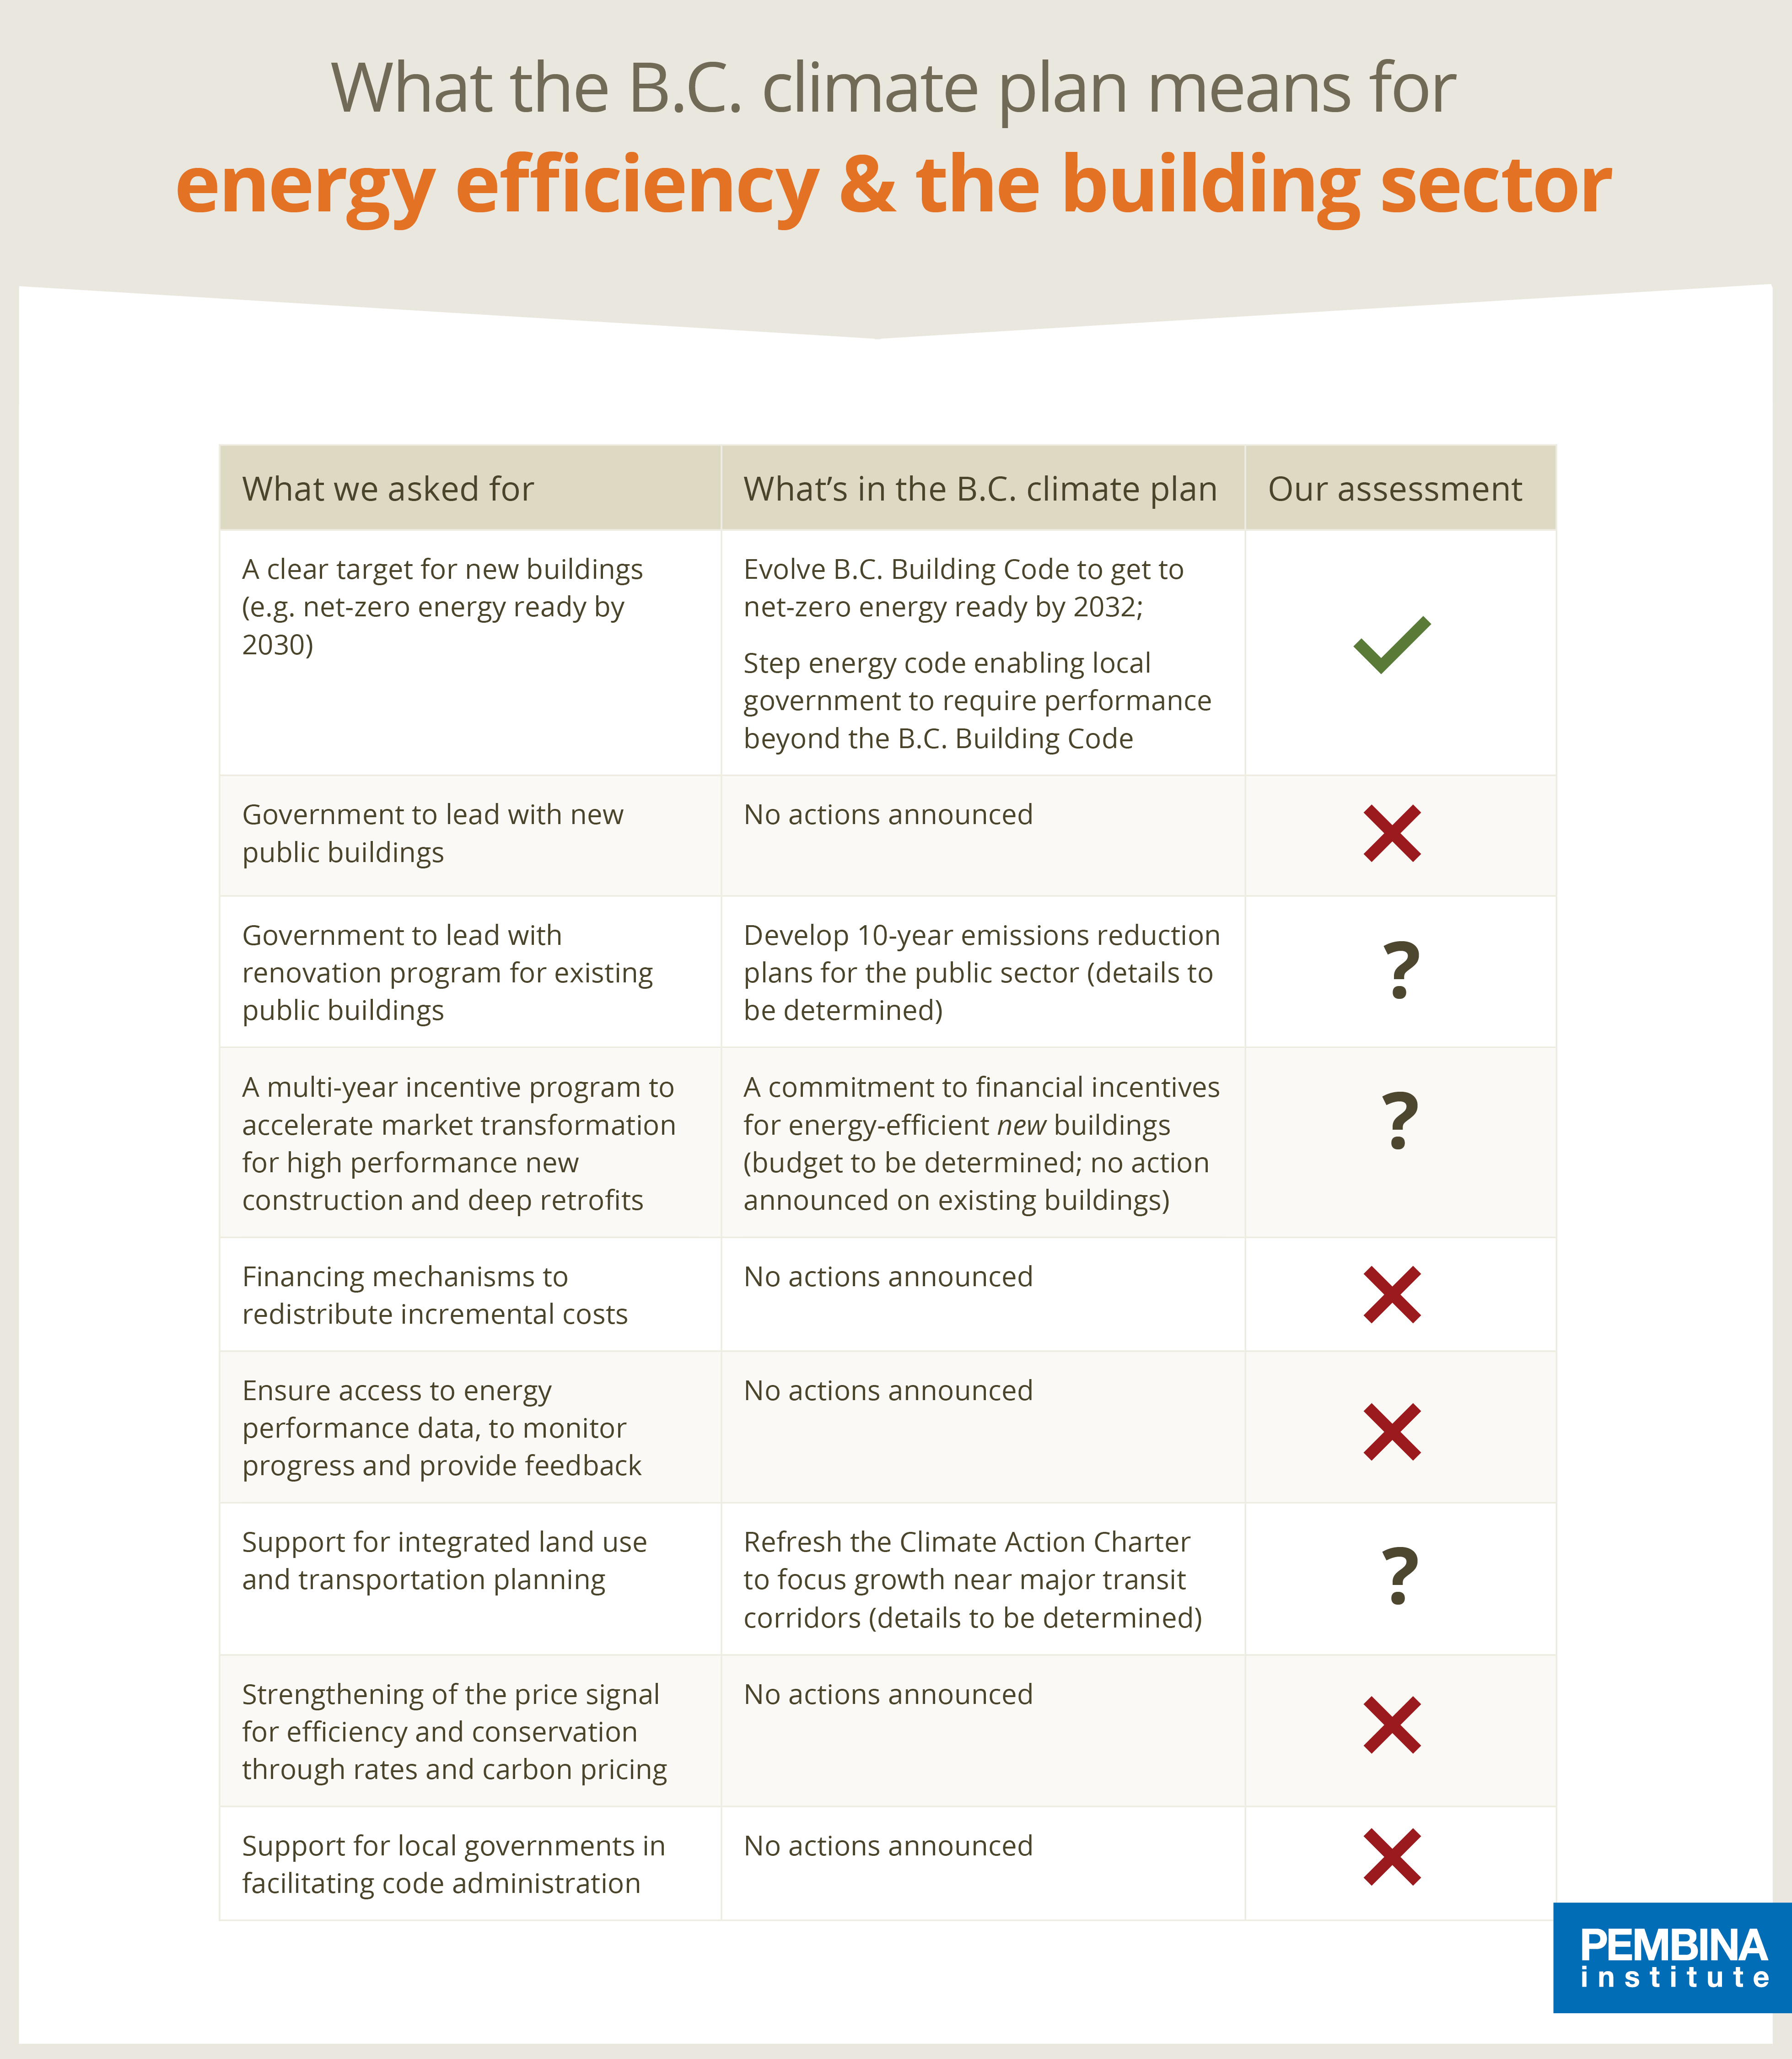 What the B.C. climate plan means for energy efficiency and the building sector